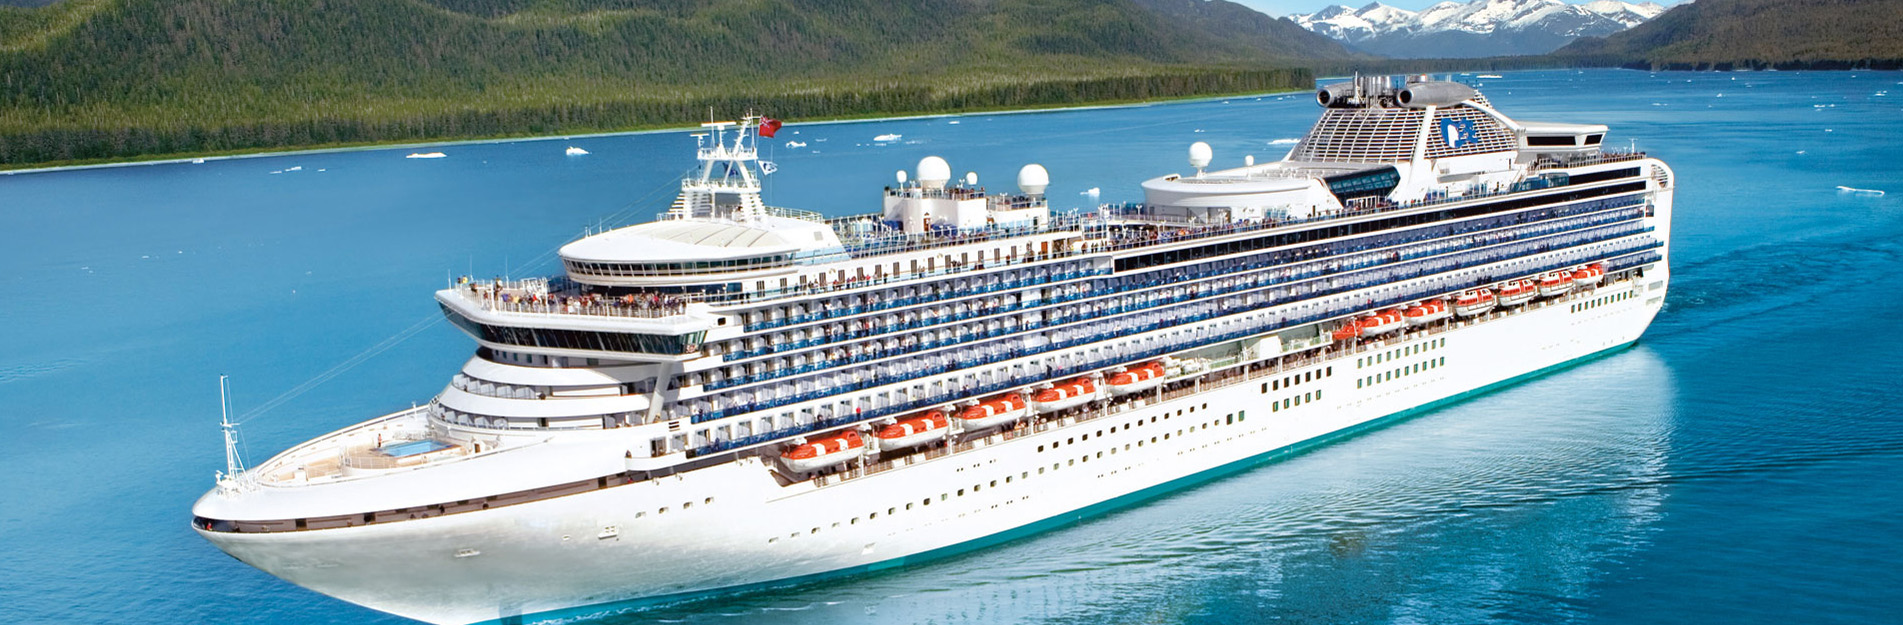 Package Details Travel Point LLC Vacations OmanOutbound - Cruise and flight packages